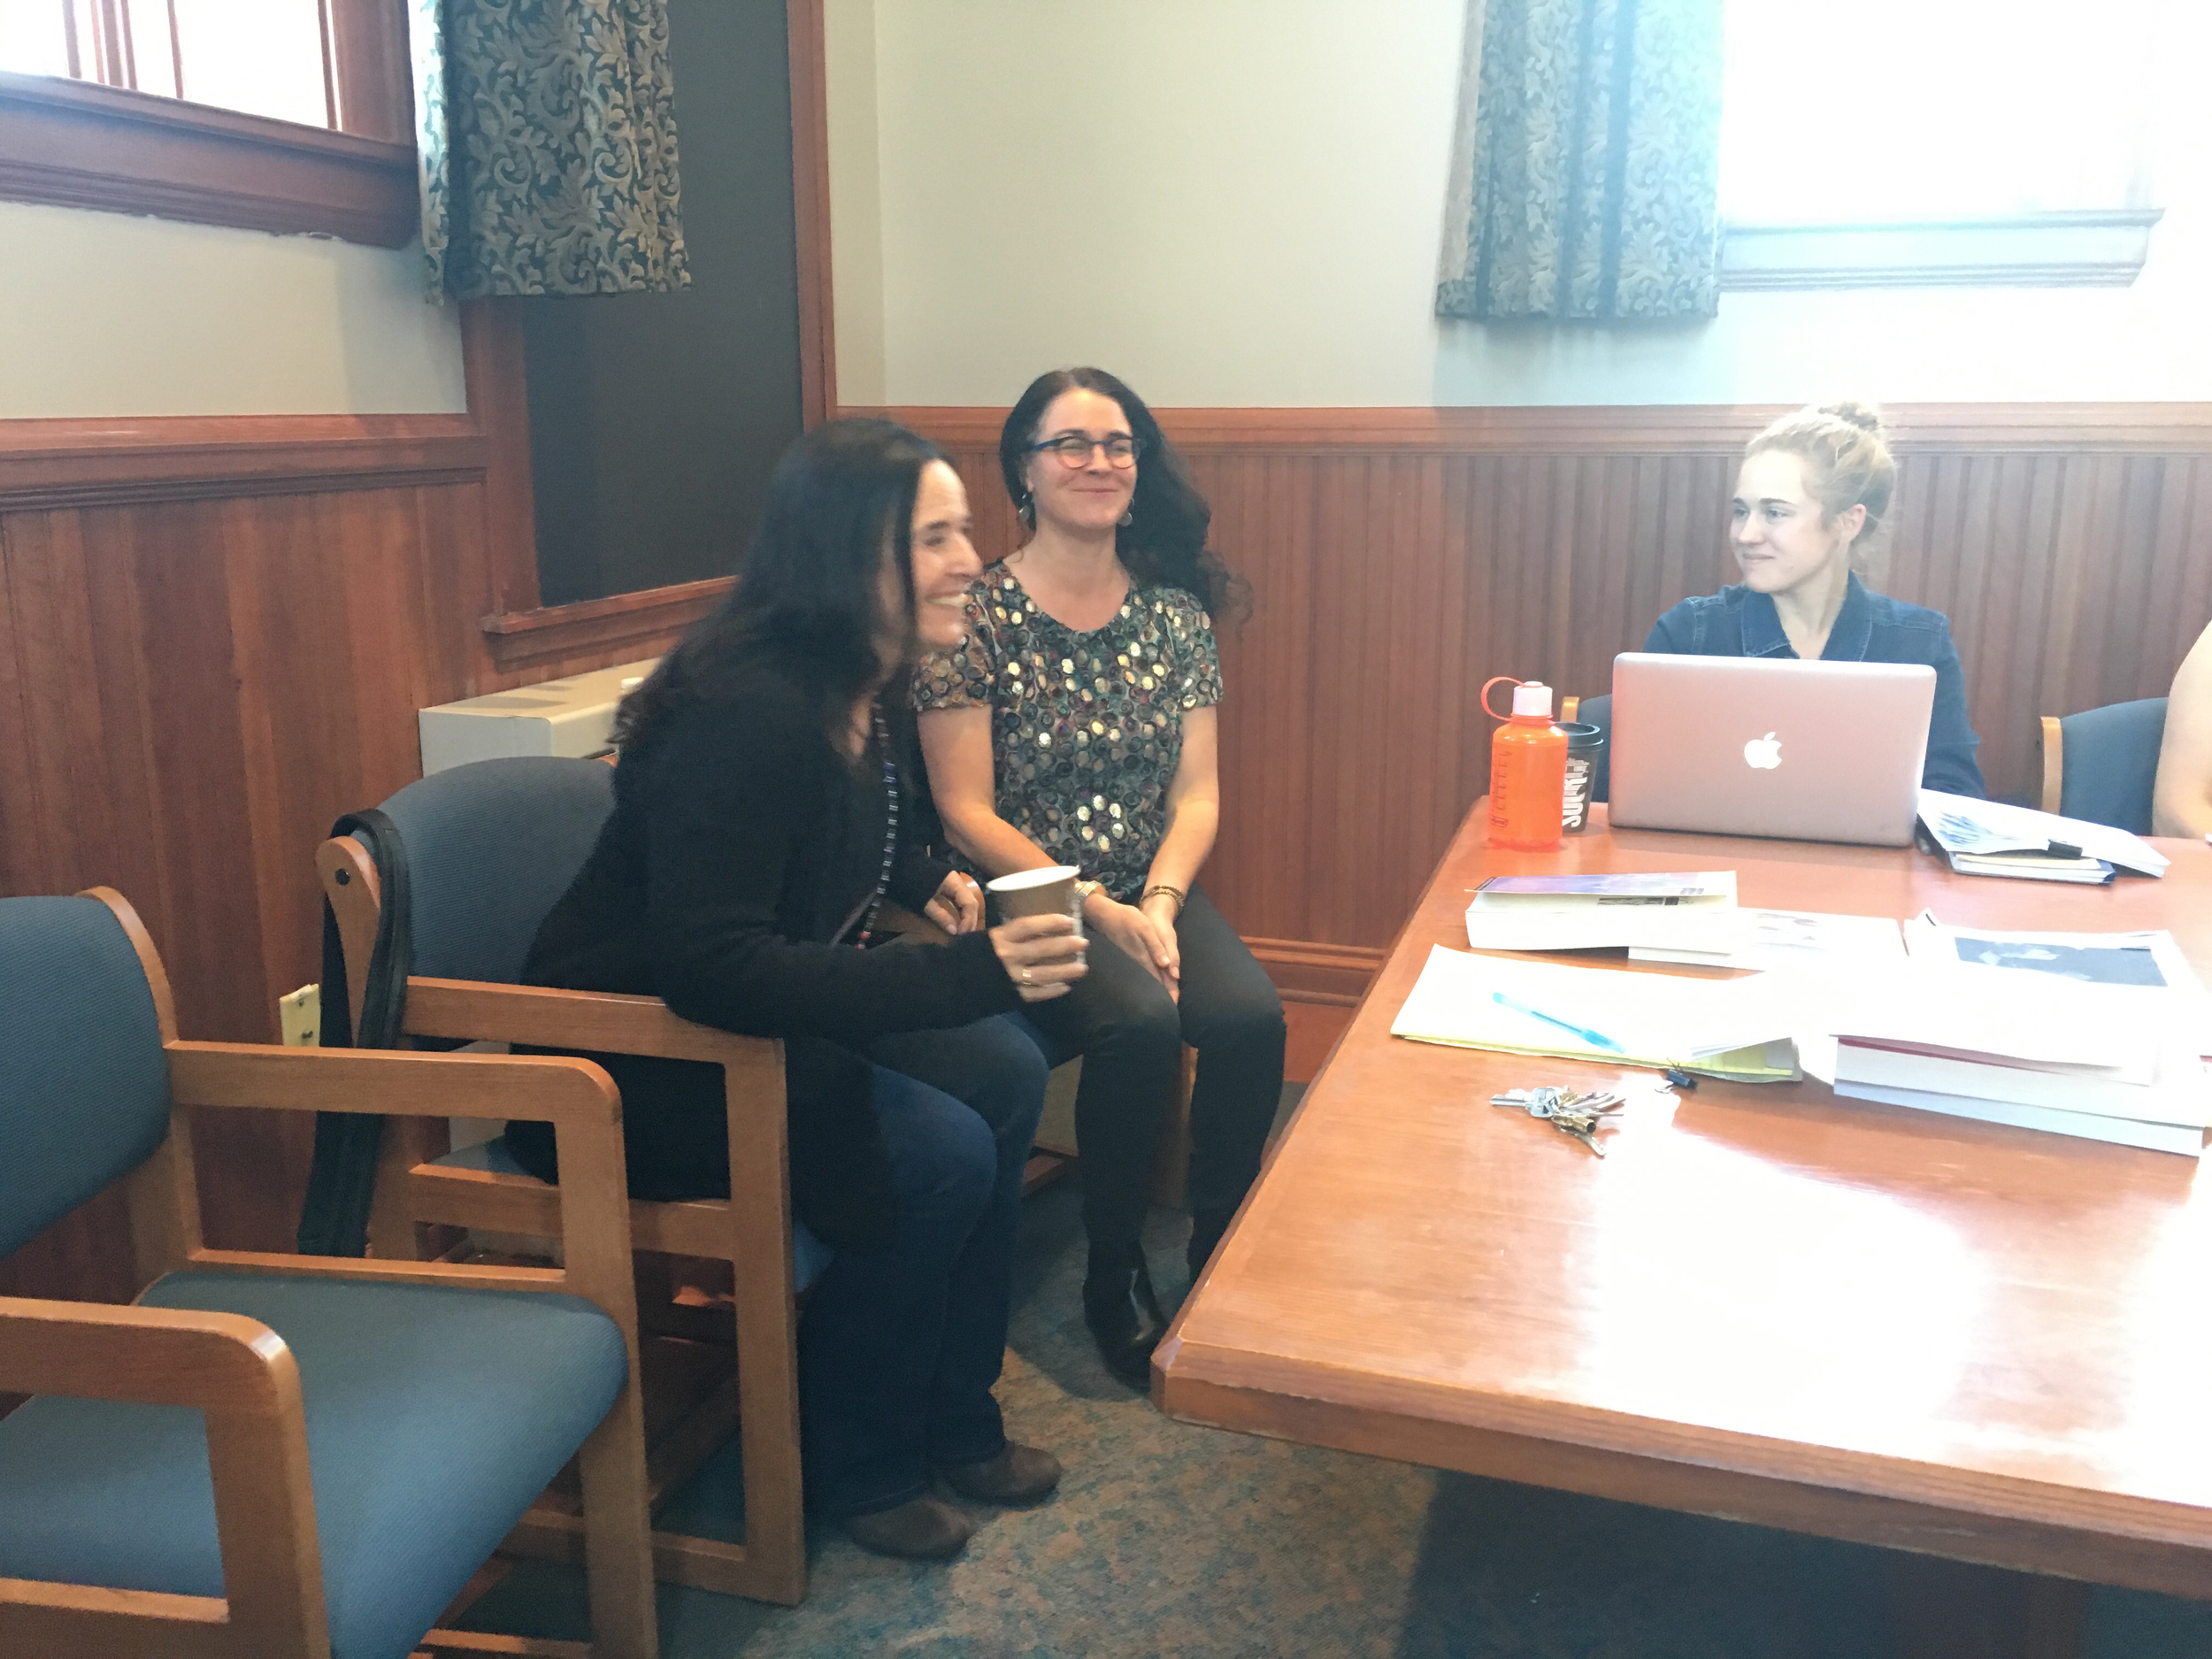 Ruth Behar visits Carole McGranahan's Graduate Seminar in Anthropology, April 6, 2016